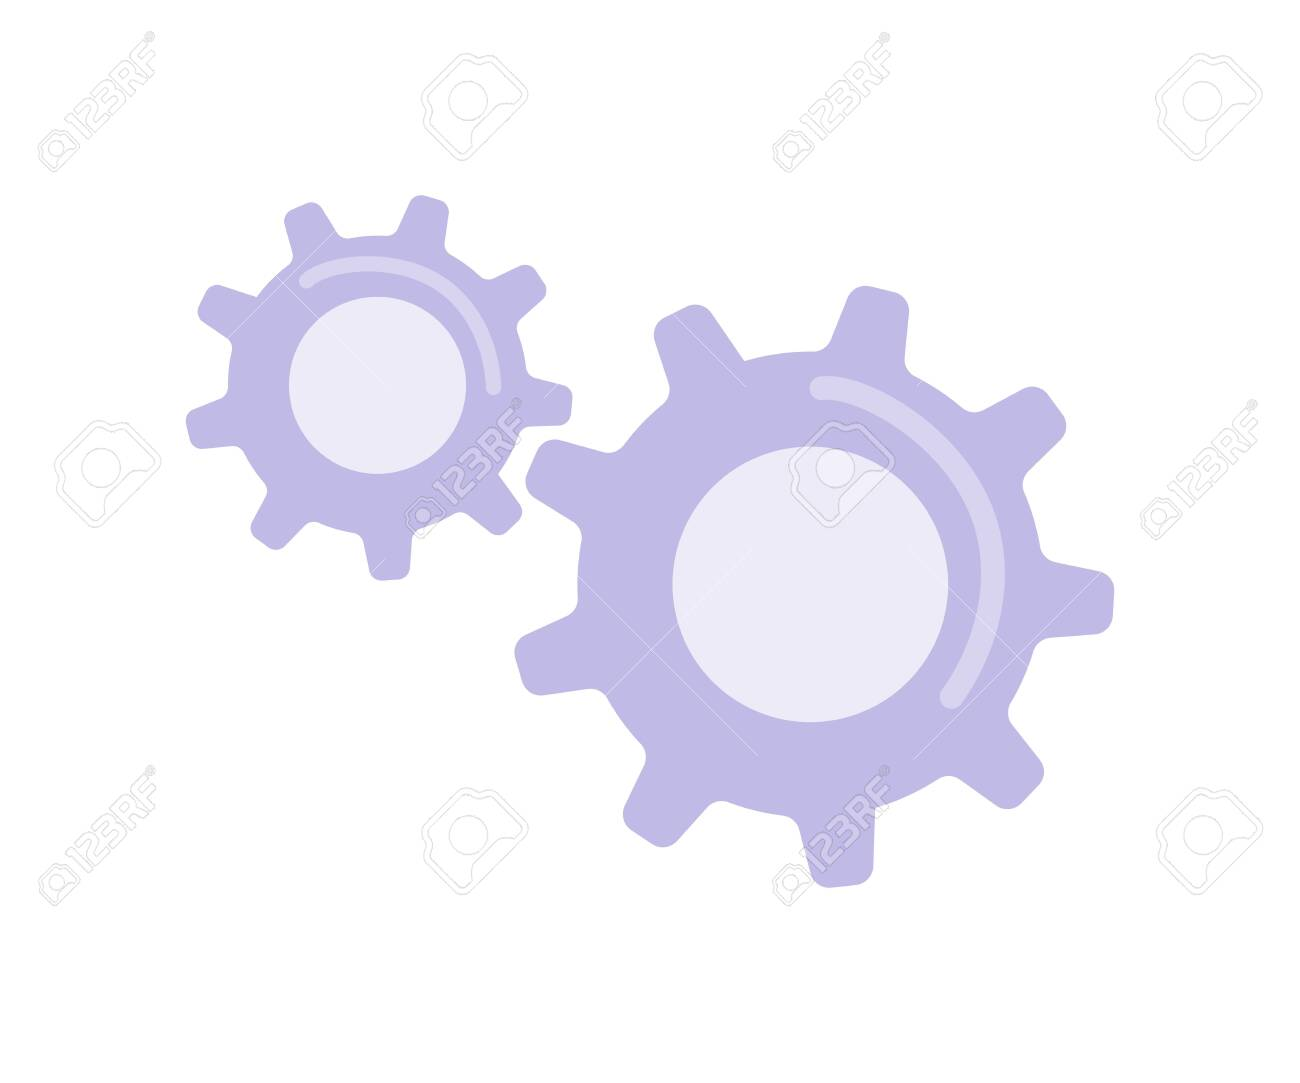 Cogwheels flat color vector object. Gear in movement. Teamwork metaphor. Mechanical mechanism. Component for technology engineering isolated cartoon illustration for web graphic design and animation - 153332540